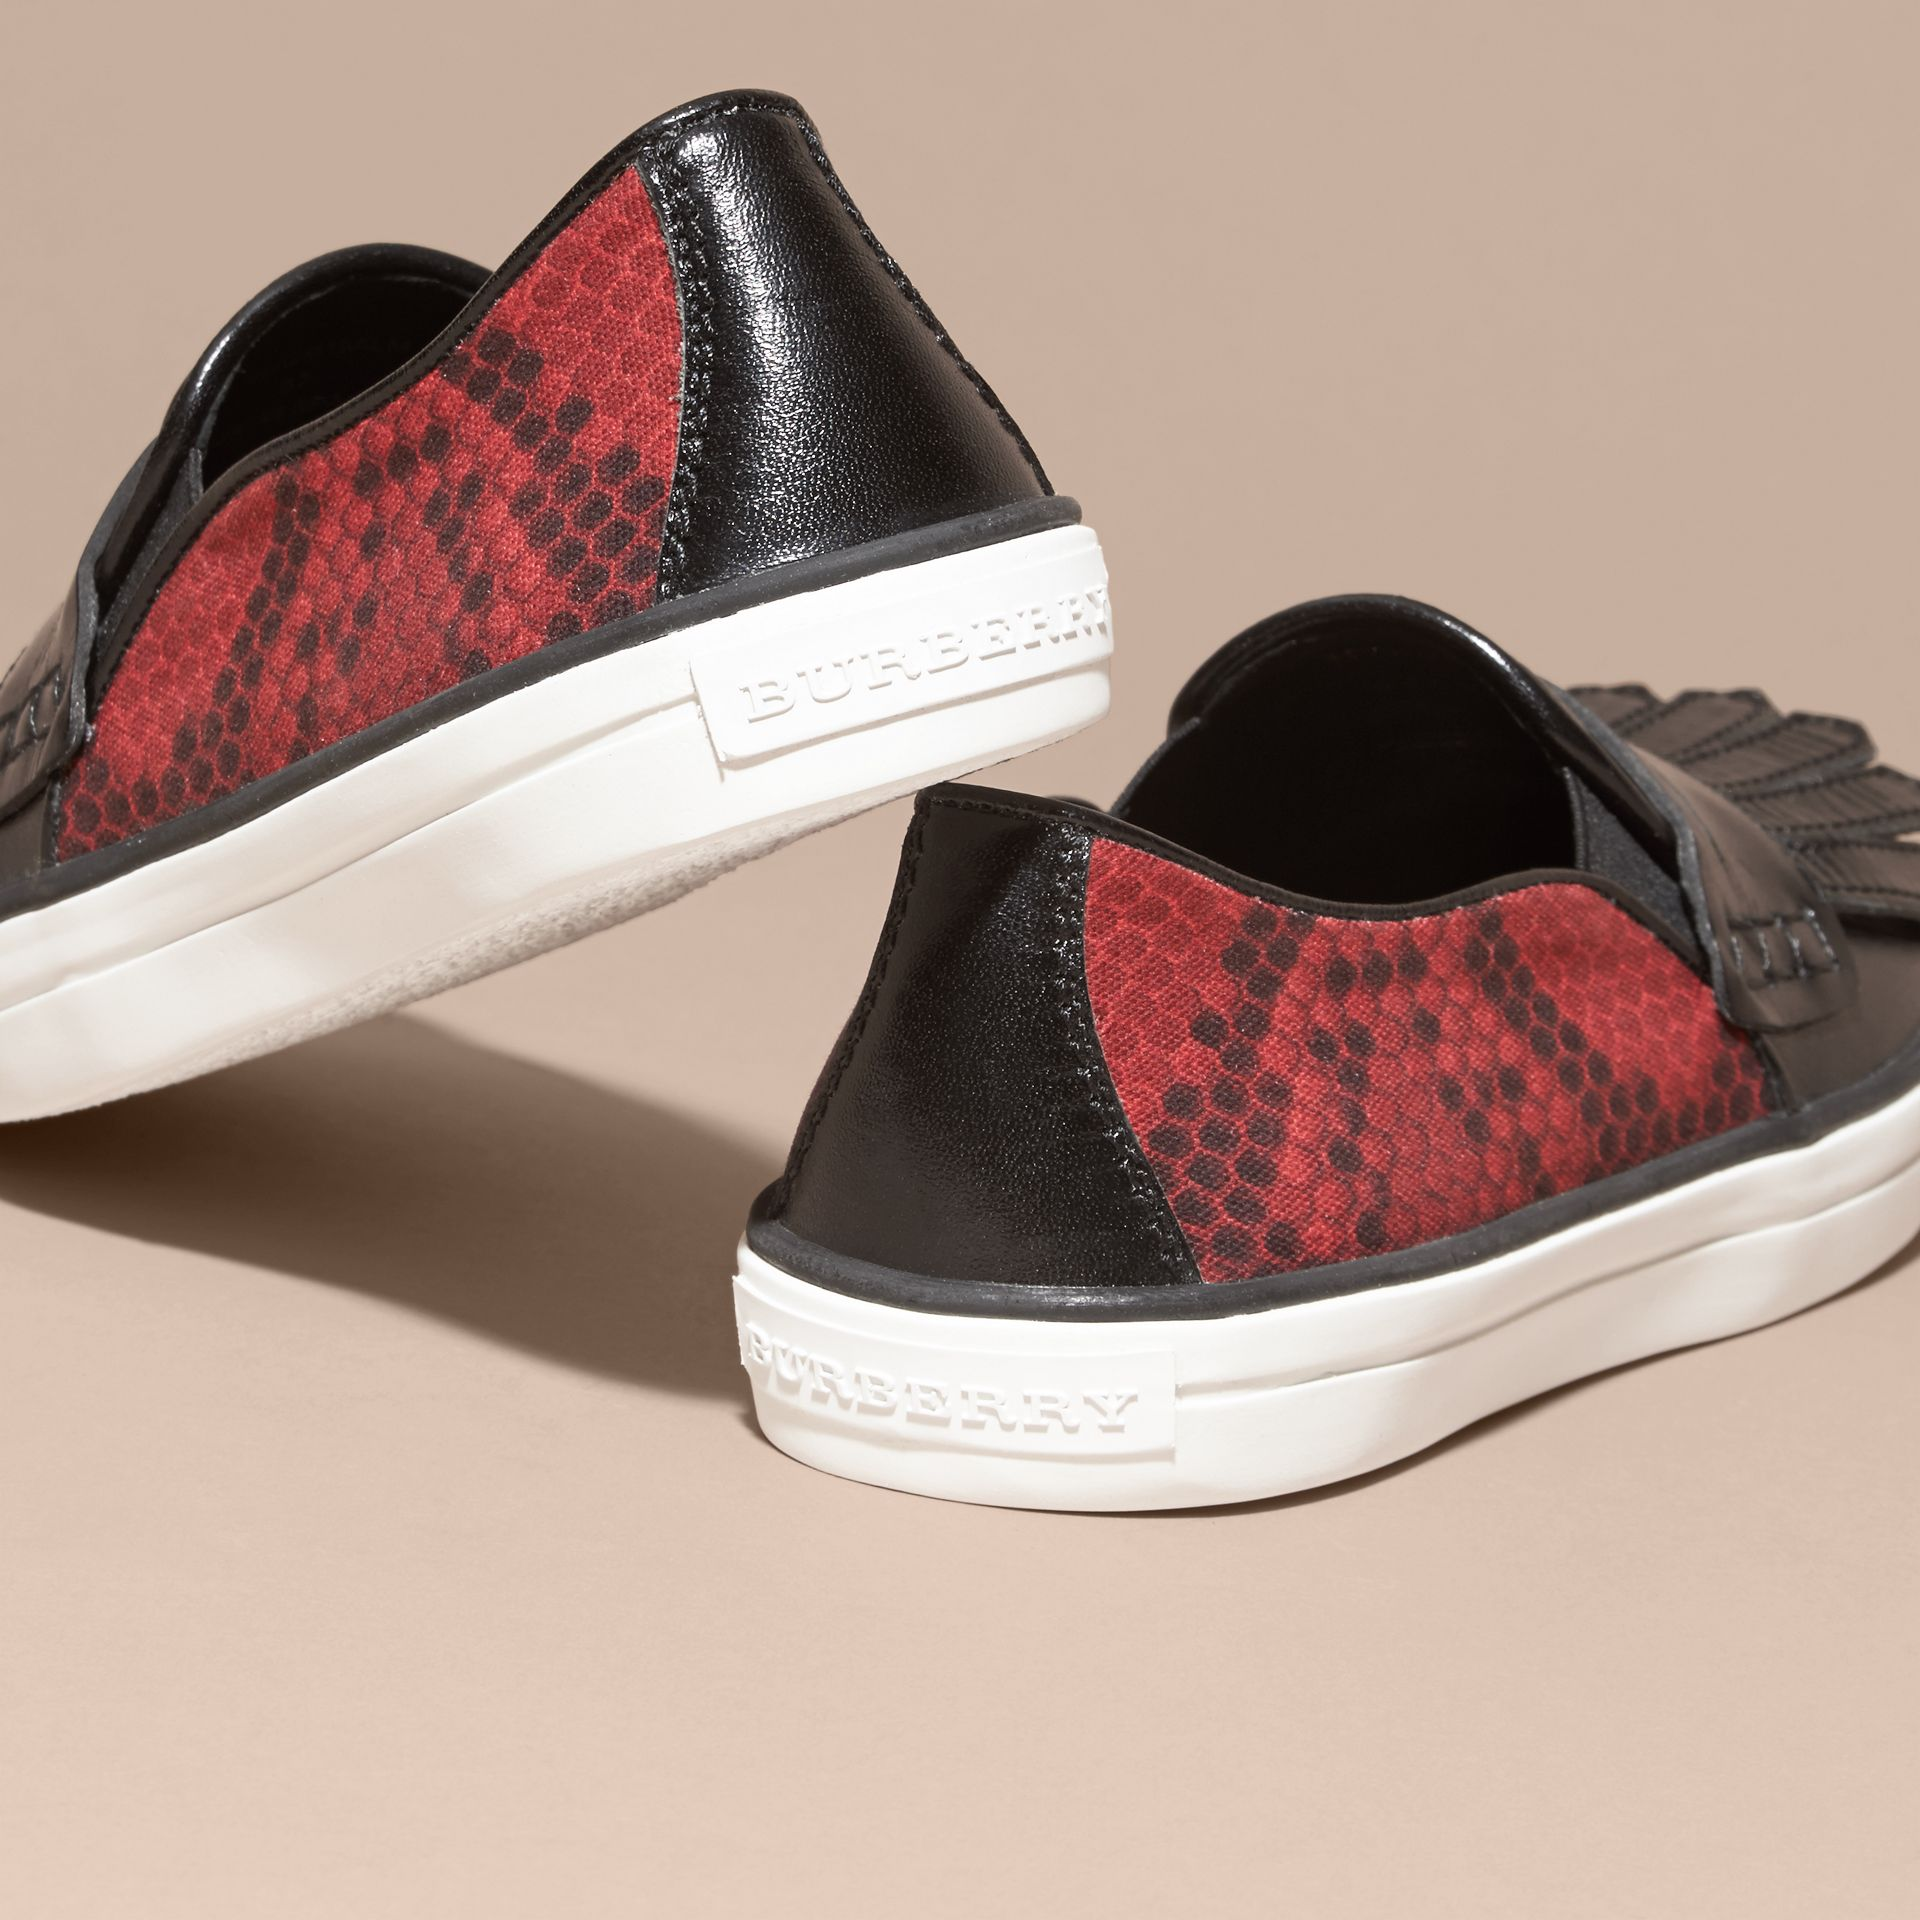 Black/windsor red Python Print Cotton and Leather Trainers Black/windsor Red - gallery image 4